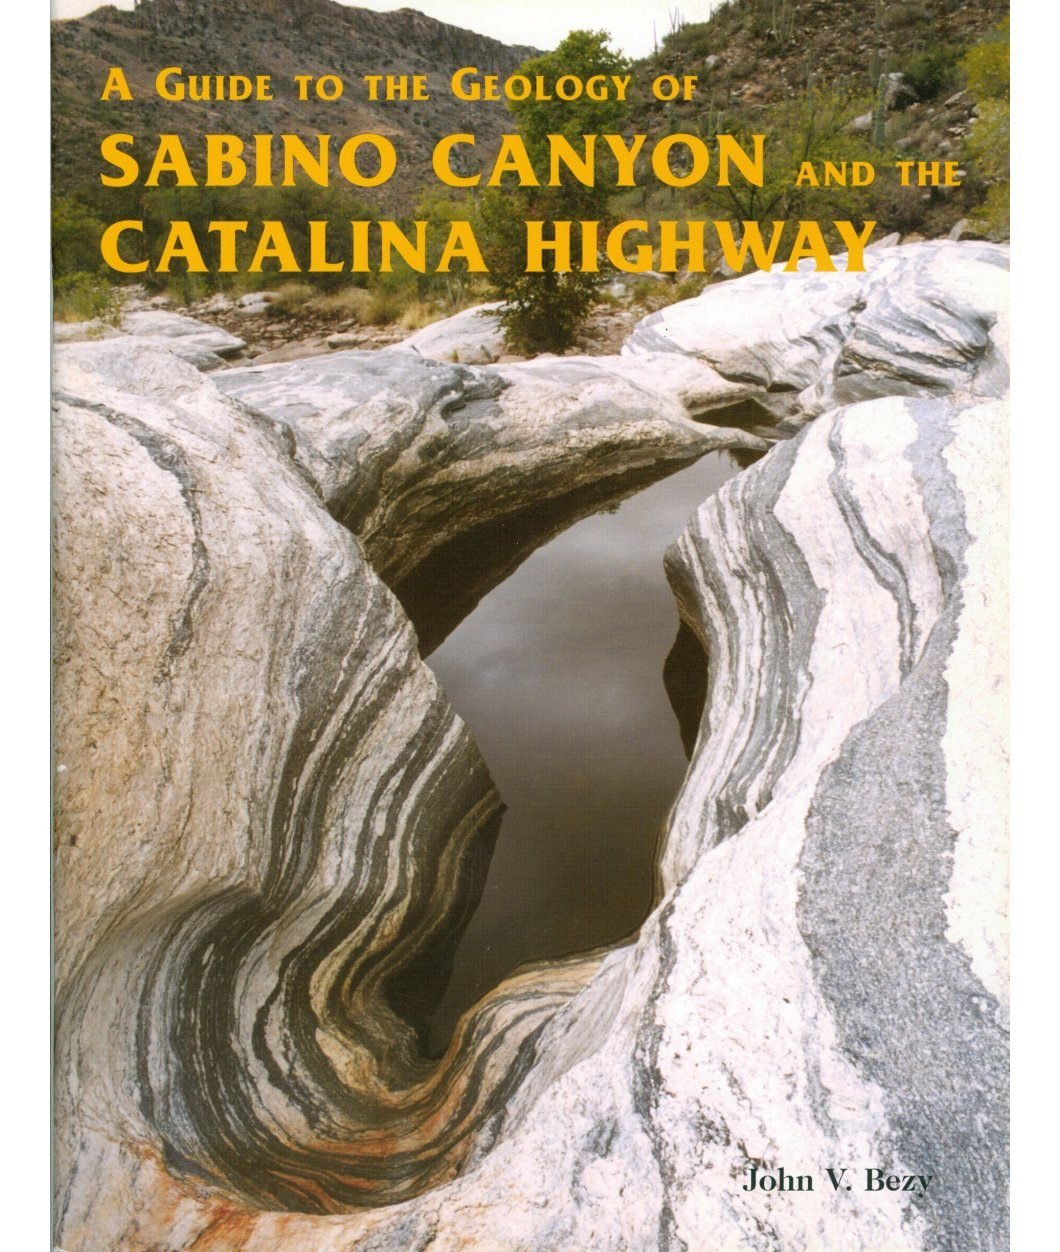 A Guide to the Geology of Sabino Canyon and the Catalina Highway